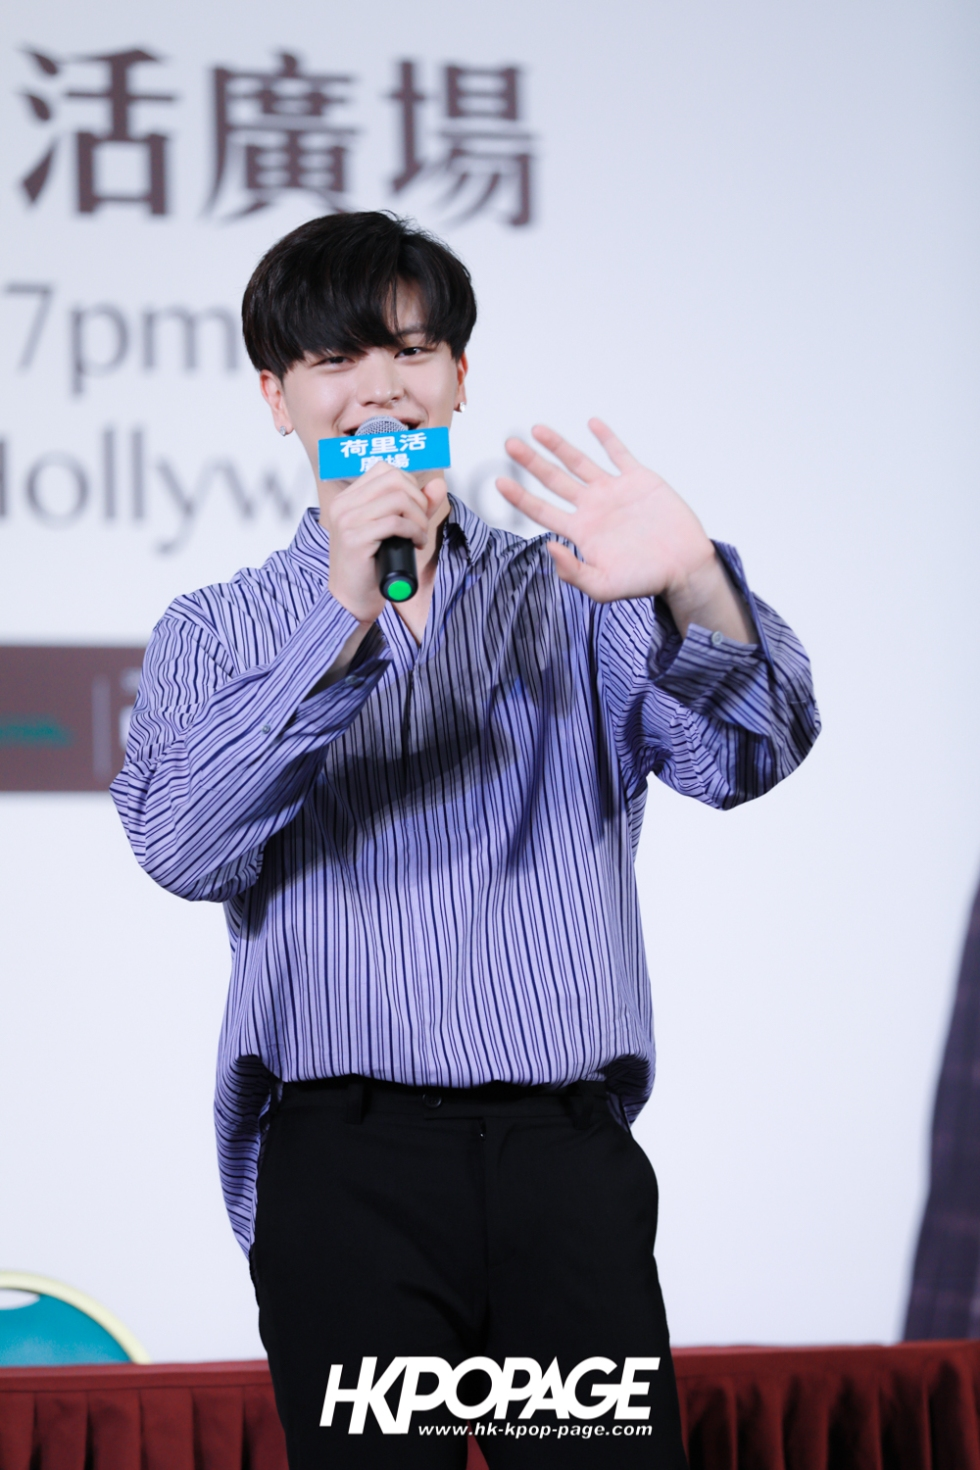 "[HK.KPOP.PAGE] 180518_Yook Sung Jae""Paradise""Fan Meeting in Hong Kong Press Conference_32"